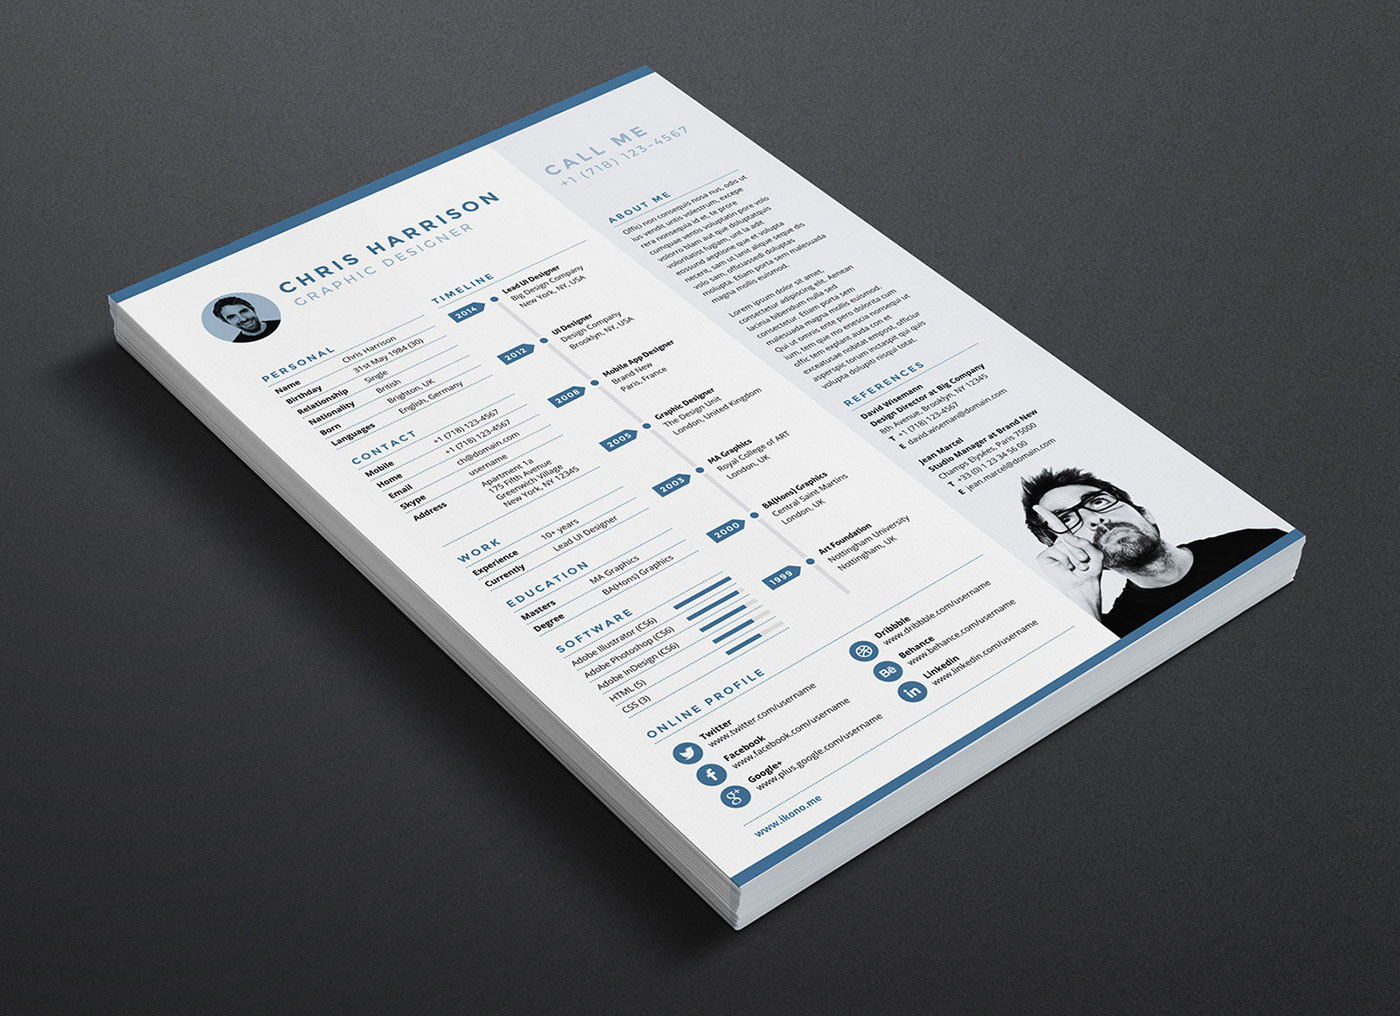 Free-Resume-CV-Template-in-INDD,-Photoshop-PSD-&-Word-DOCX-2